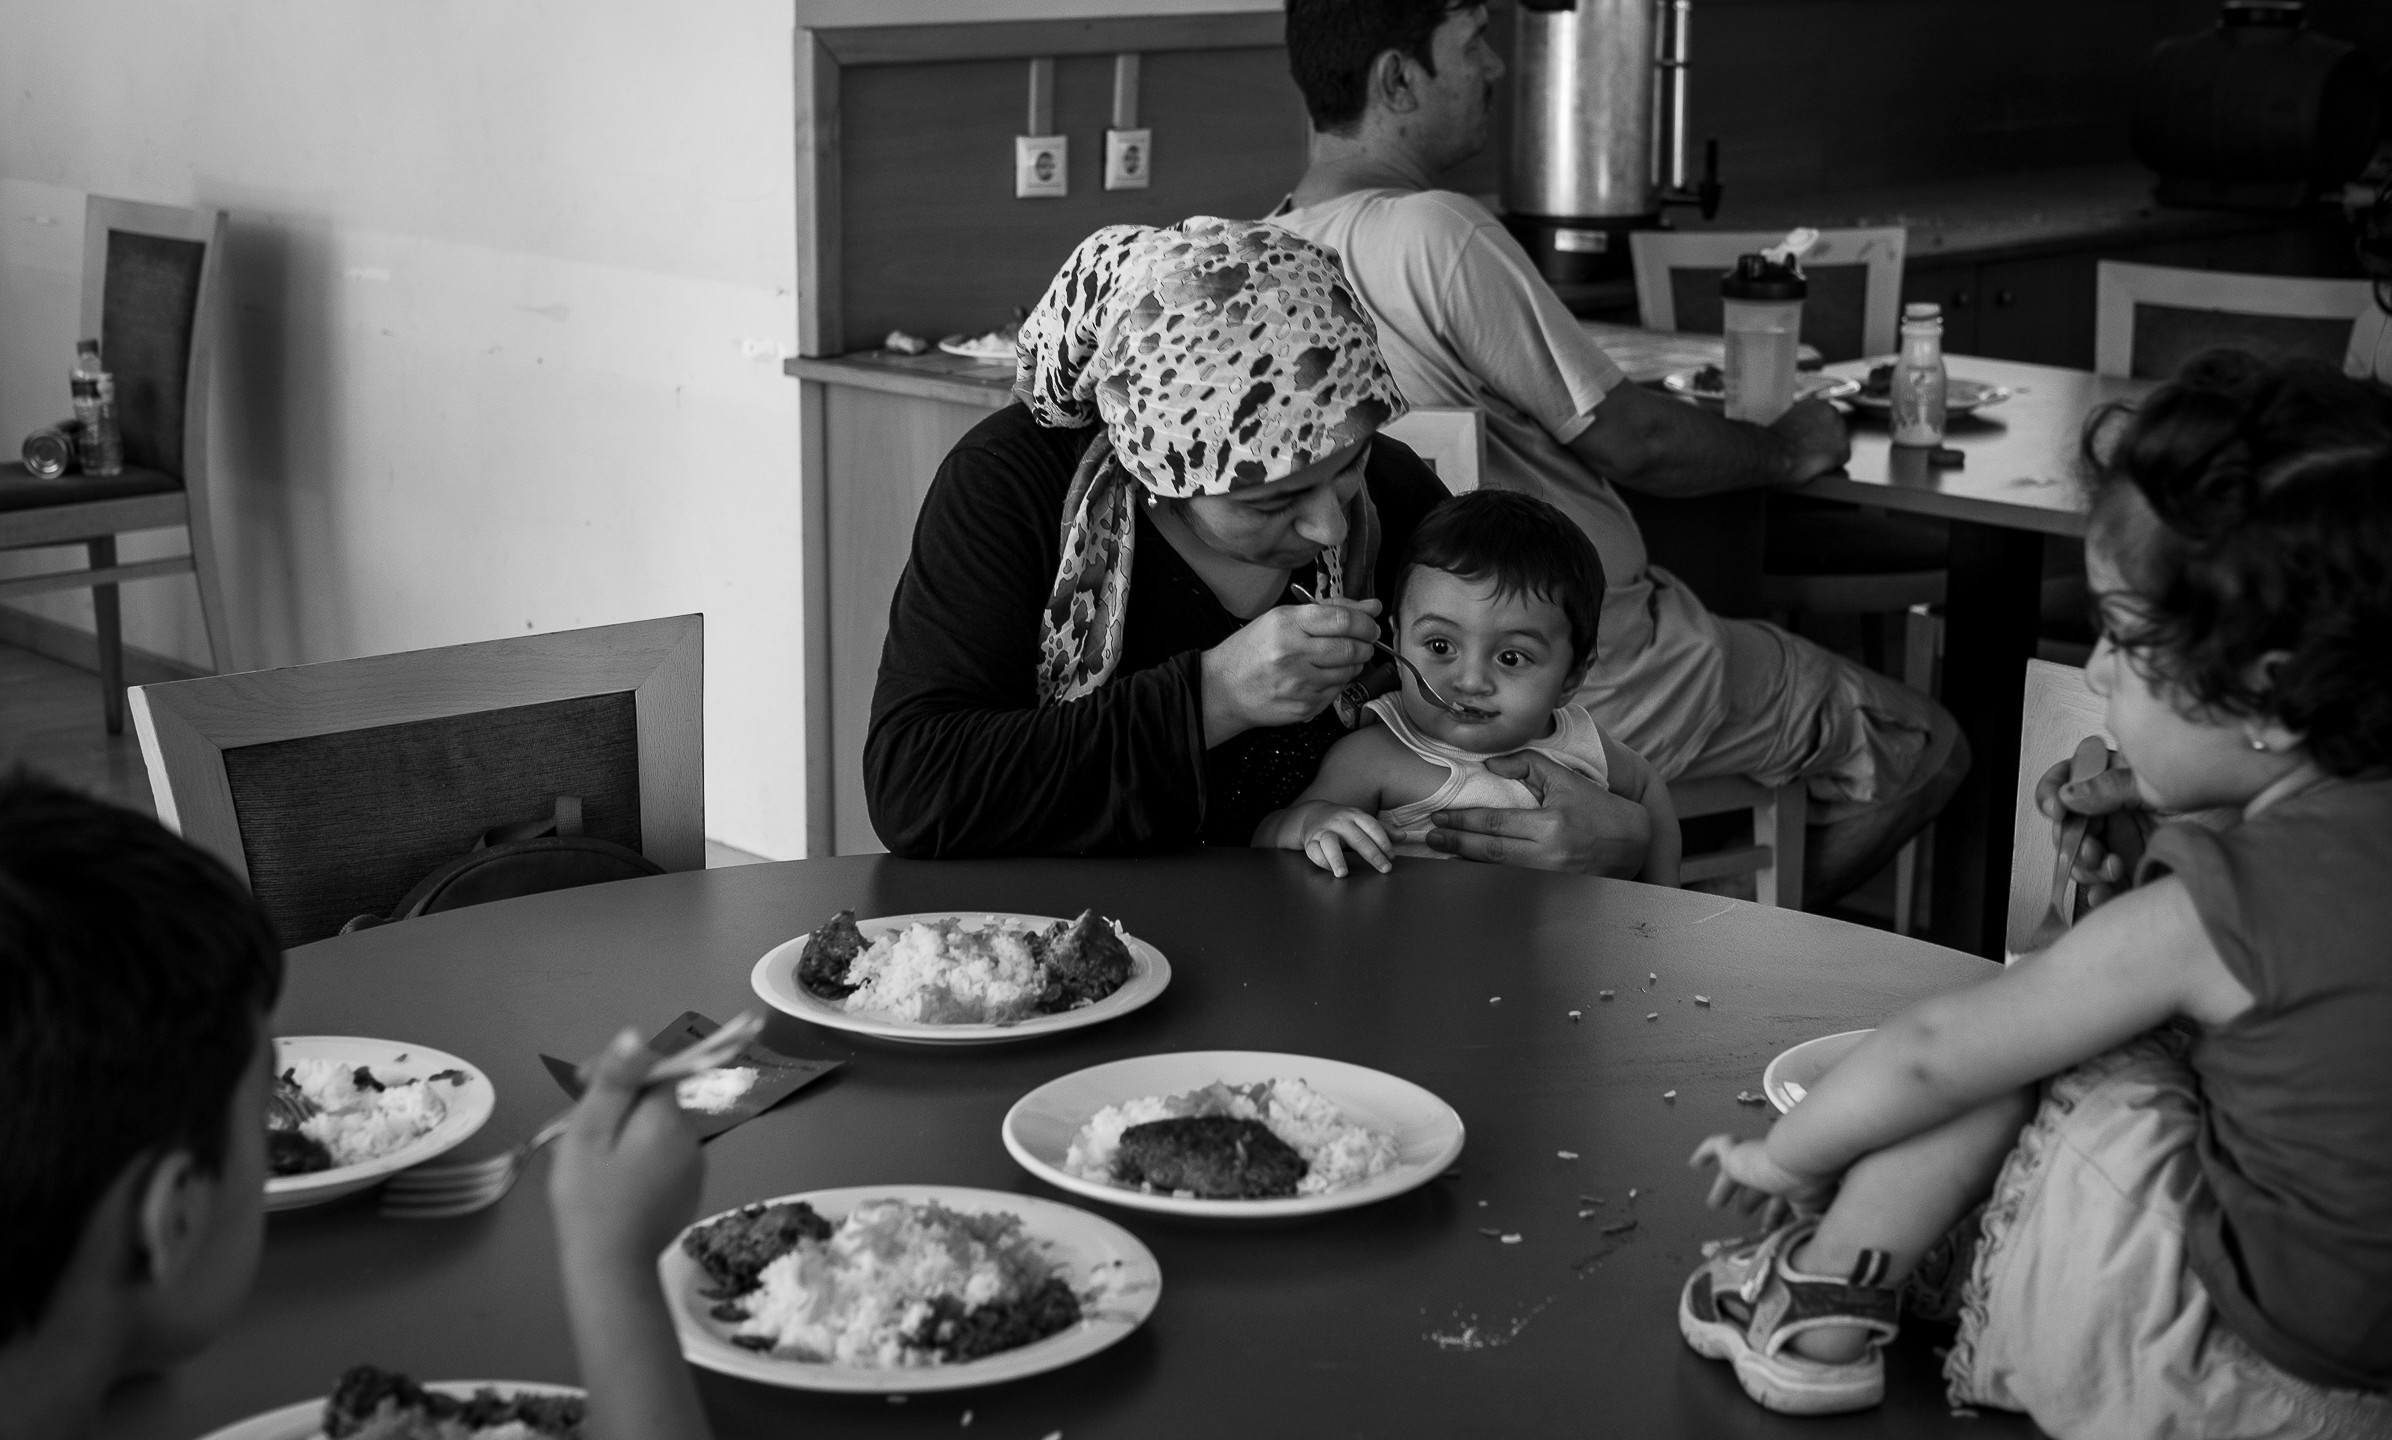 Maryam Sheikh Mohammed, 27, from Hasakah, Syria, made the journey to Greece by boat with her husband and four children, the youngest of whom was only seven months old.